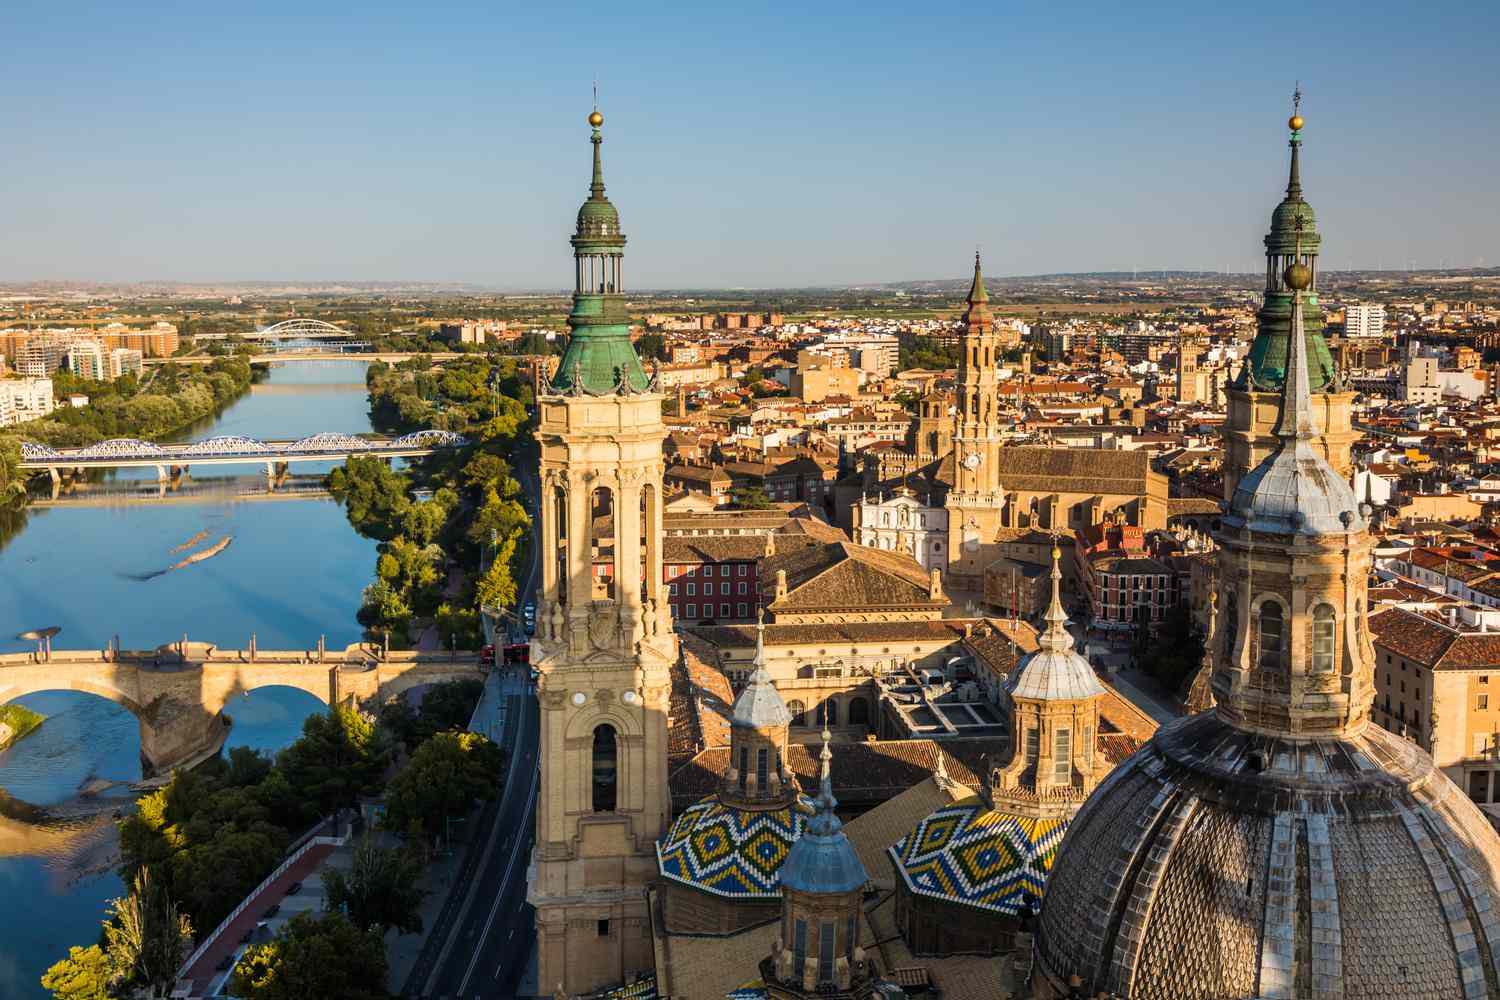 Rooftop view of the Cathedral-Basilica of Our Lady of the Pillar in Zaragoza, Spain